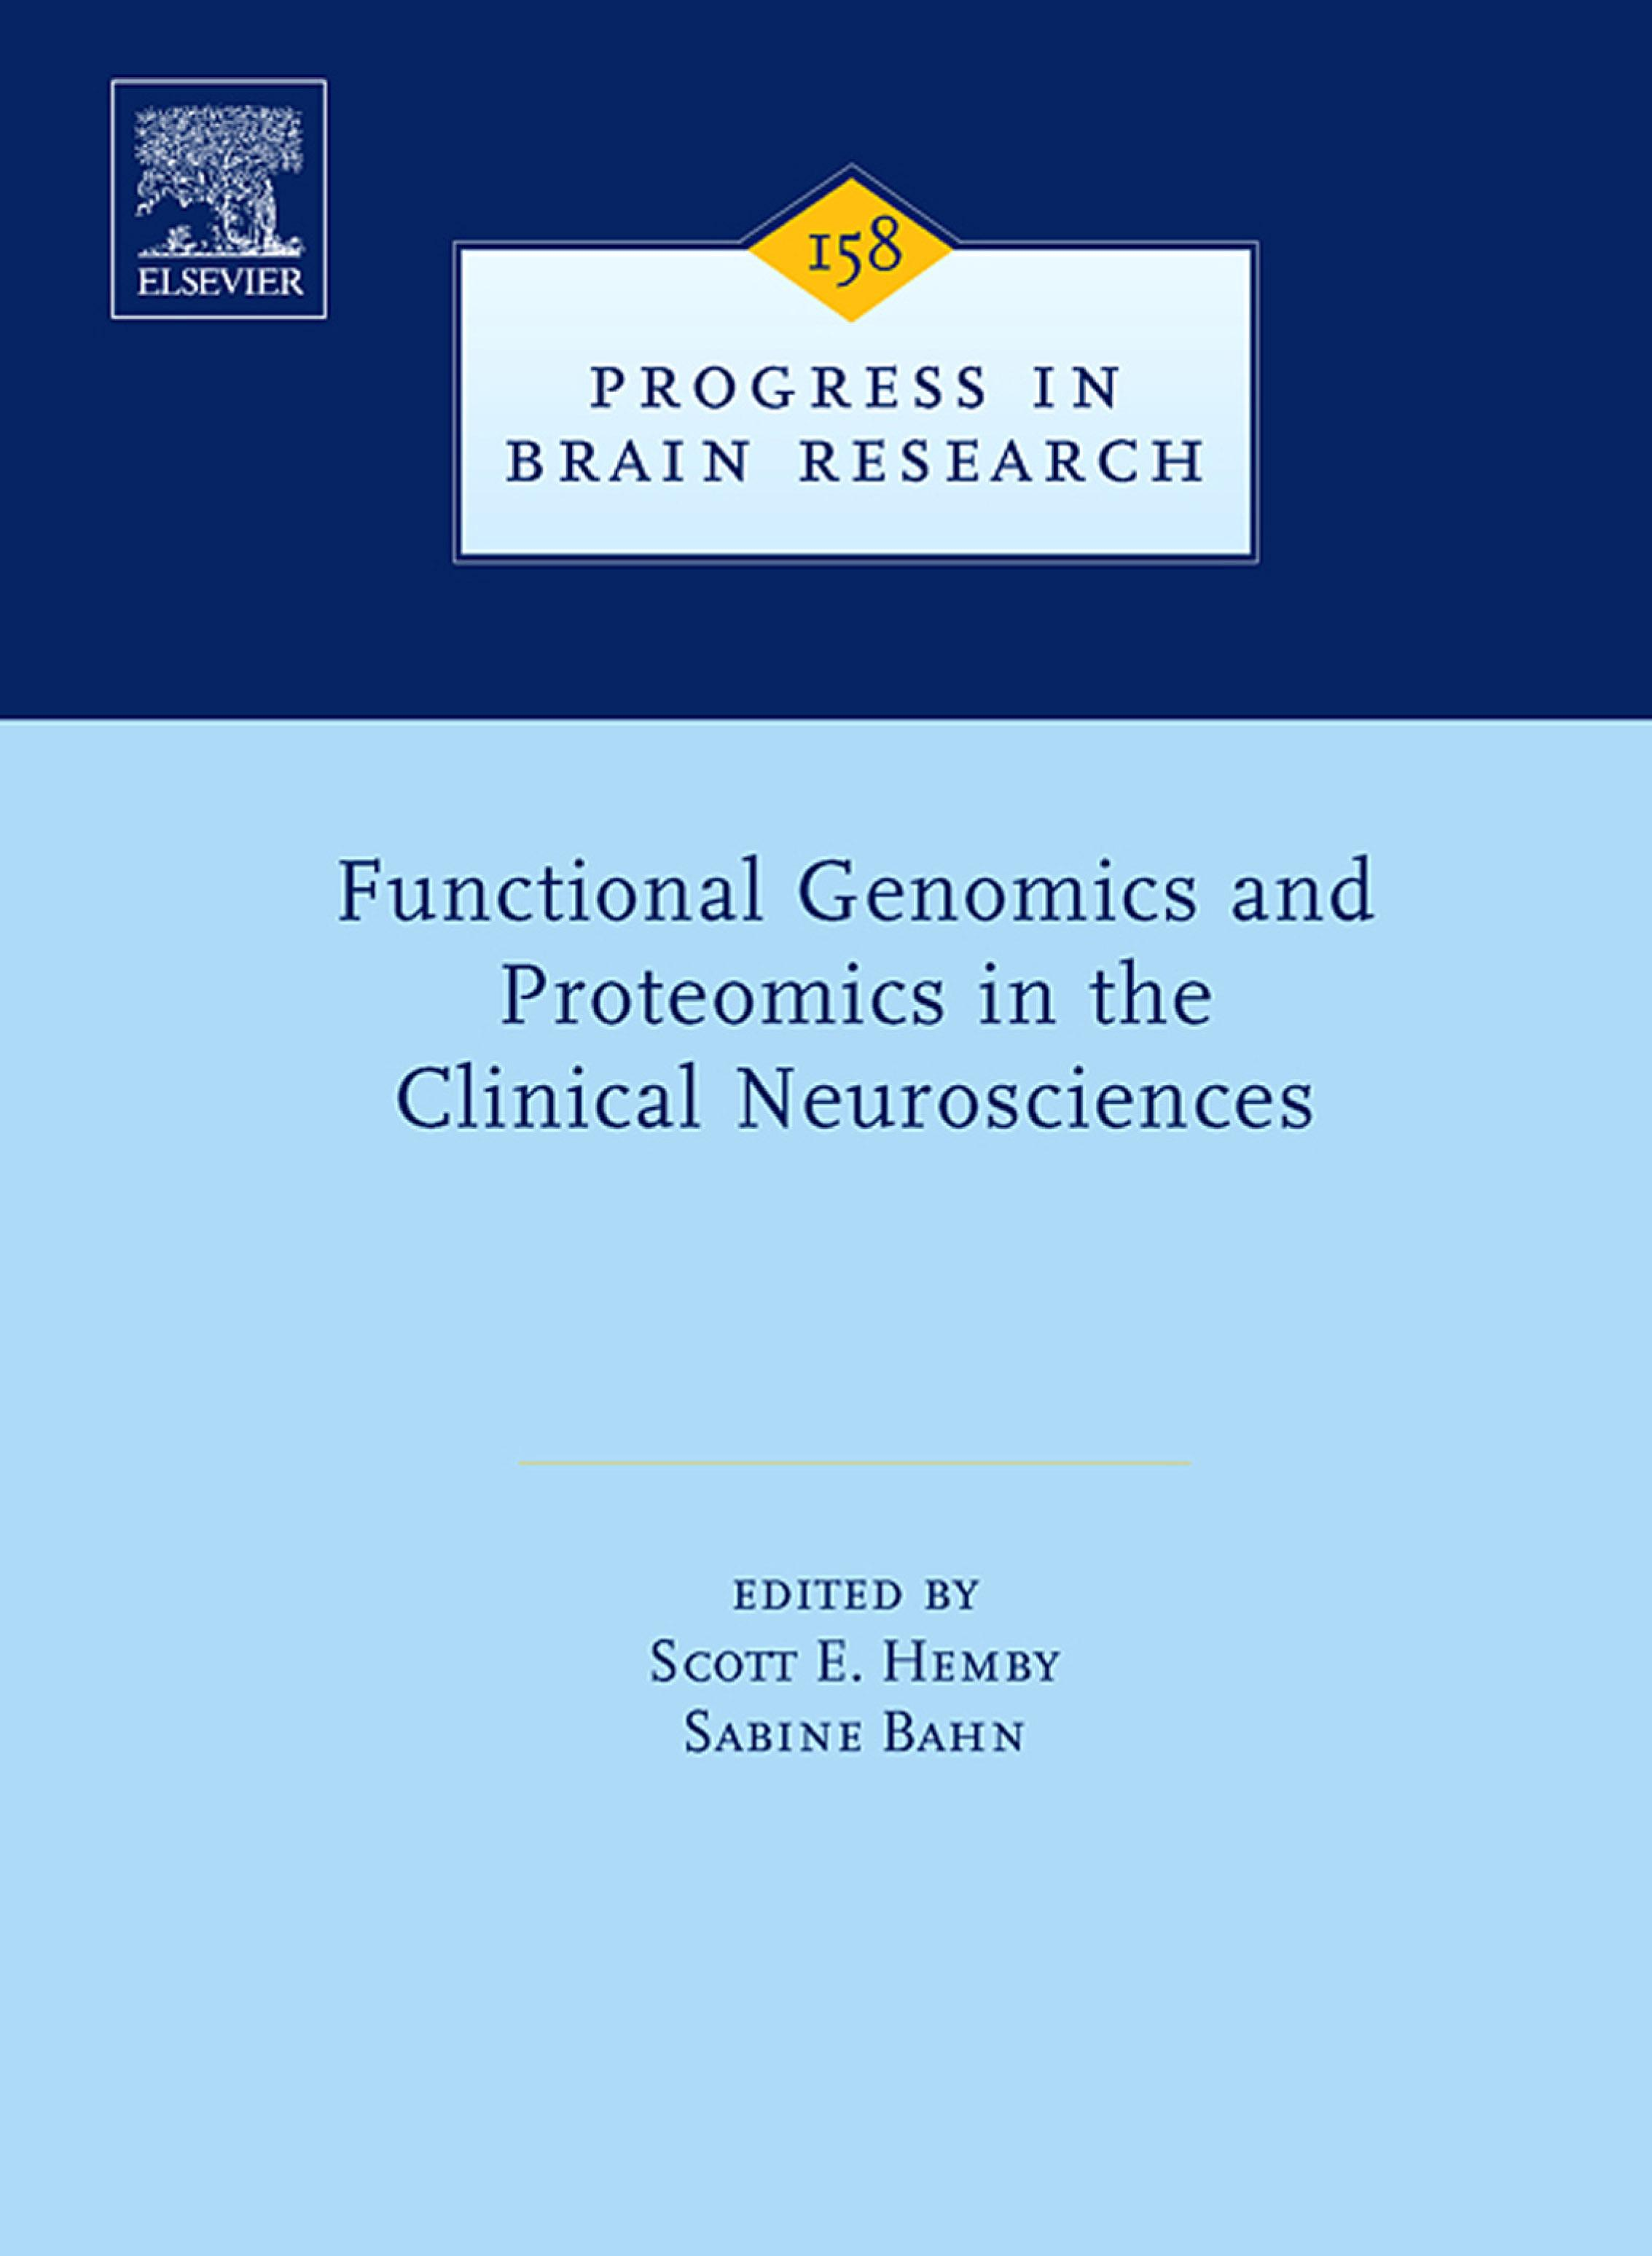 Functional Genomics and Proteomics in the Clinical Neurosciences EB9780080465630